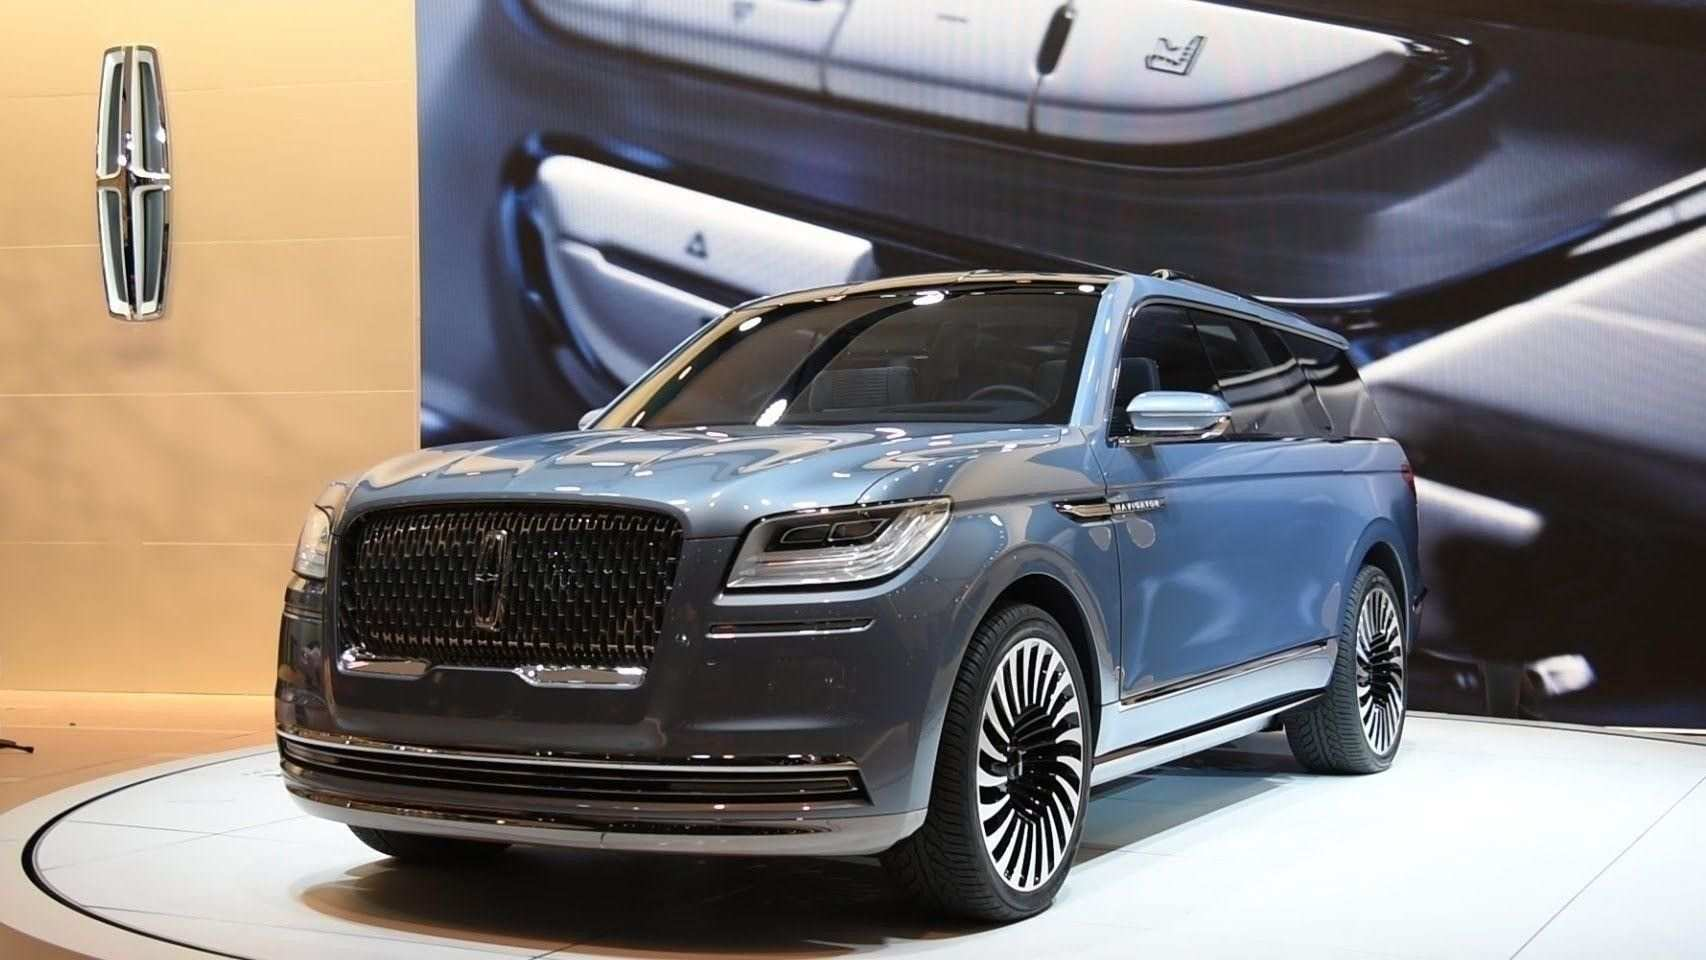 94 The Best 2019 Lincoln MKS Spy Photos Style